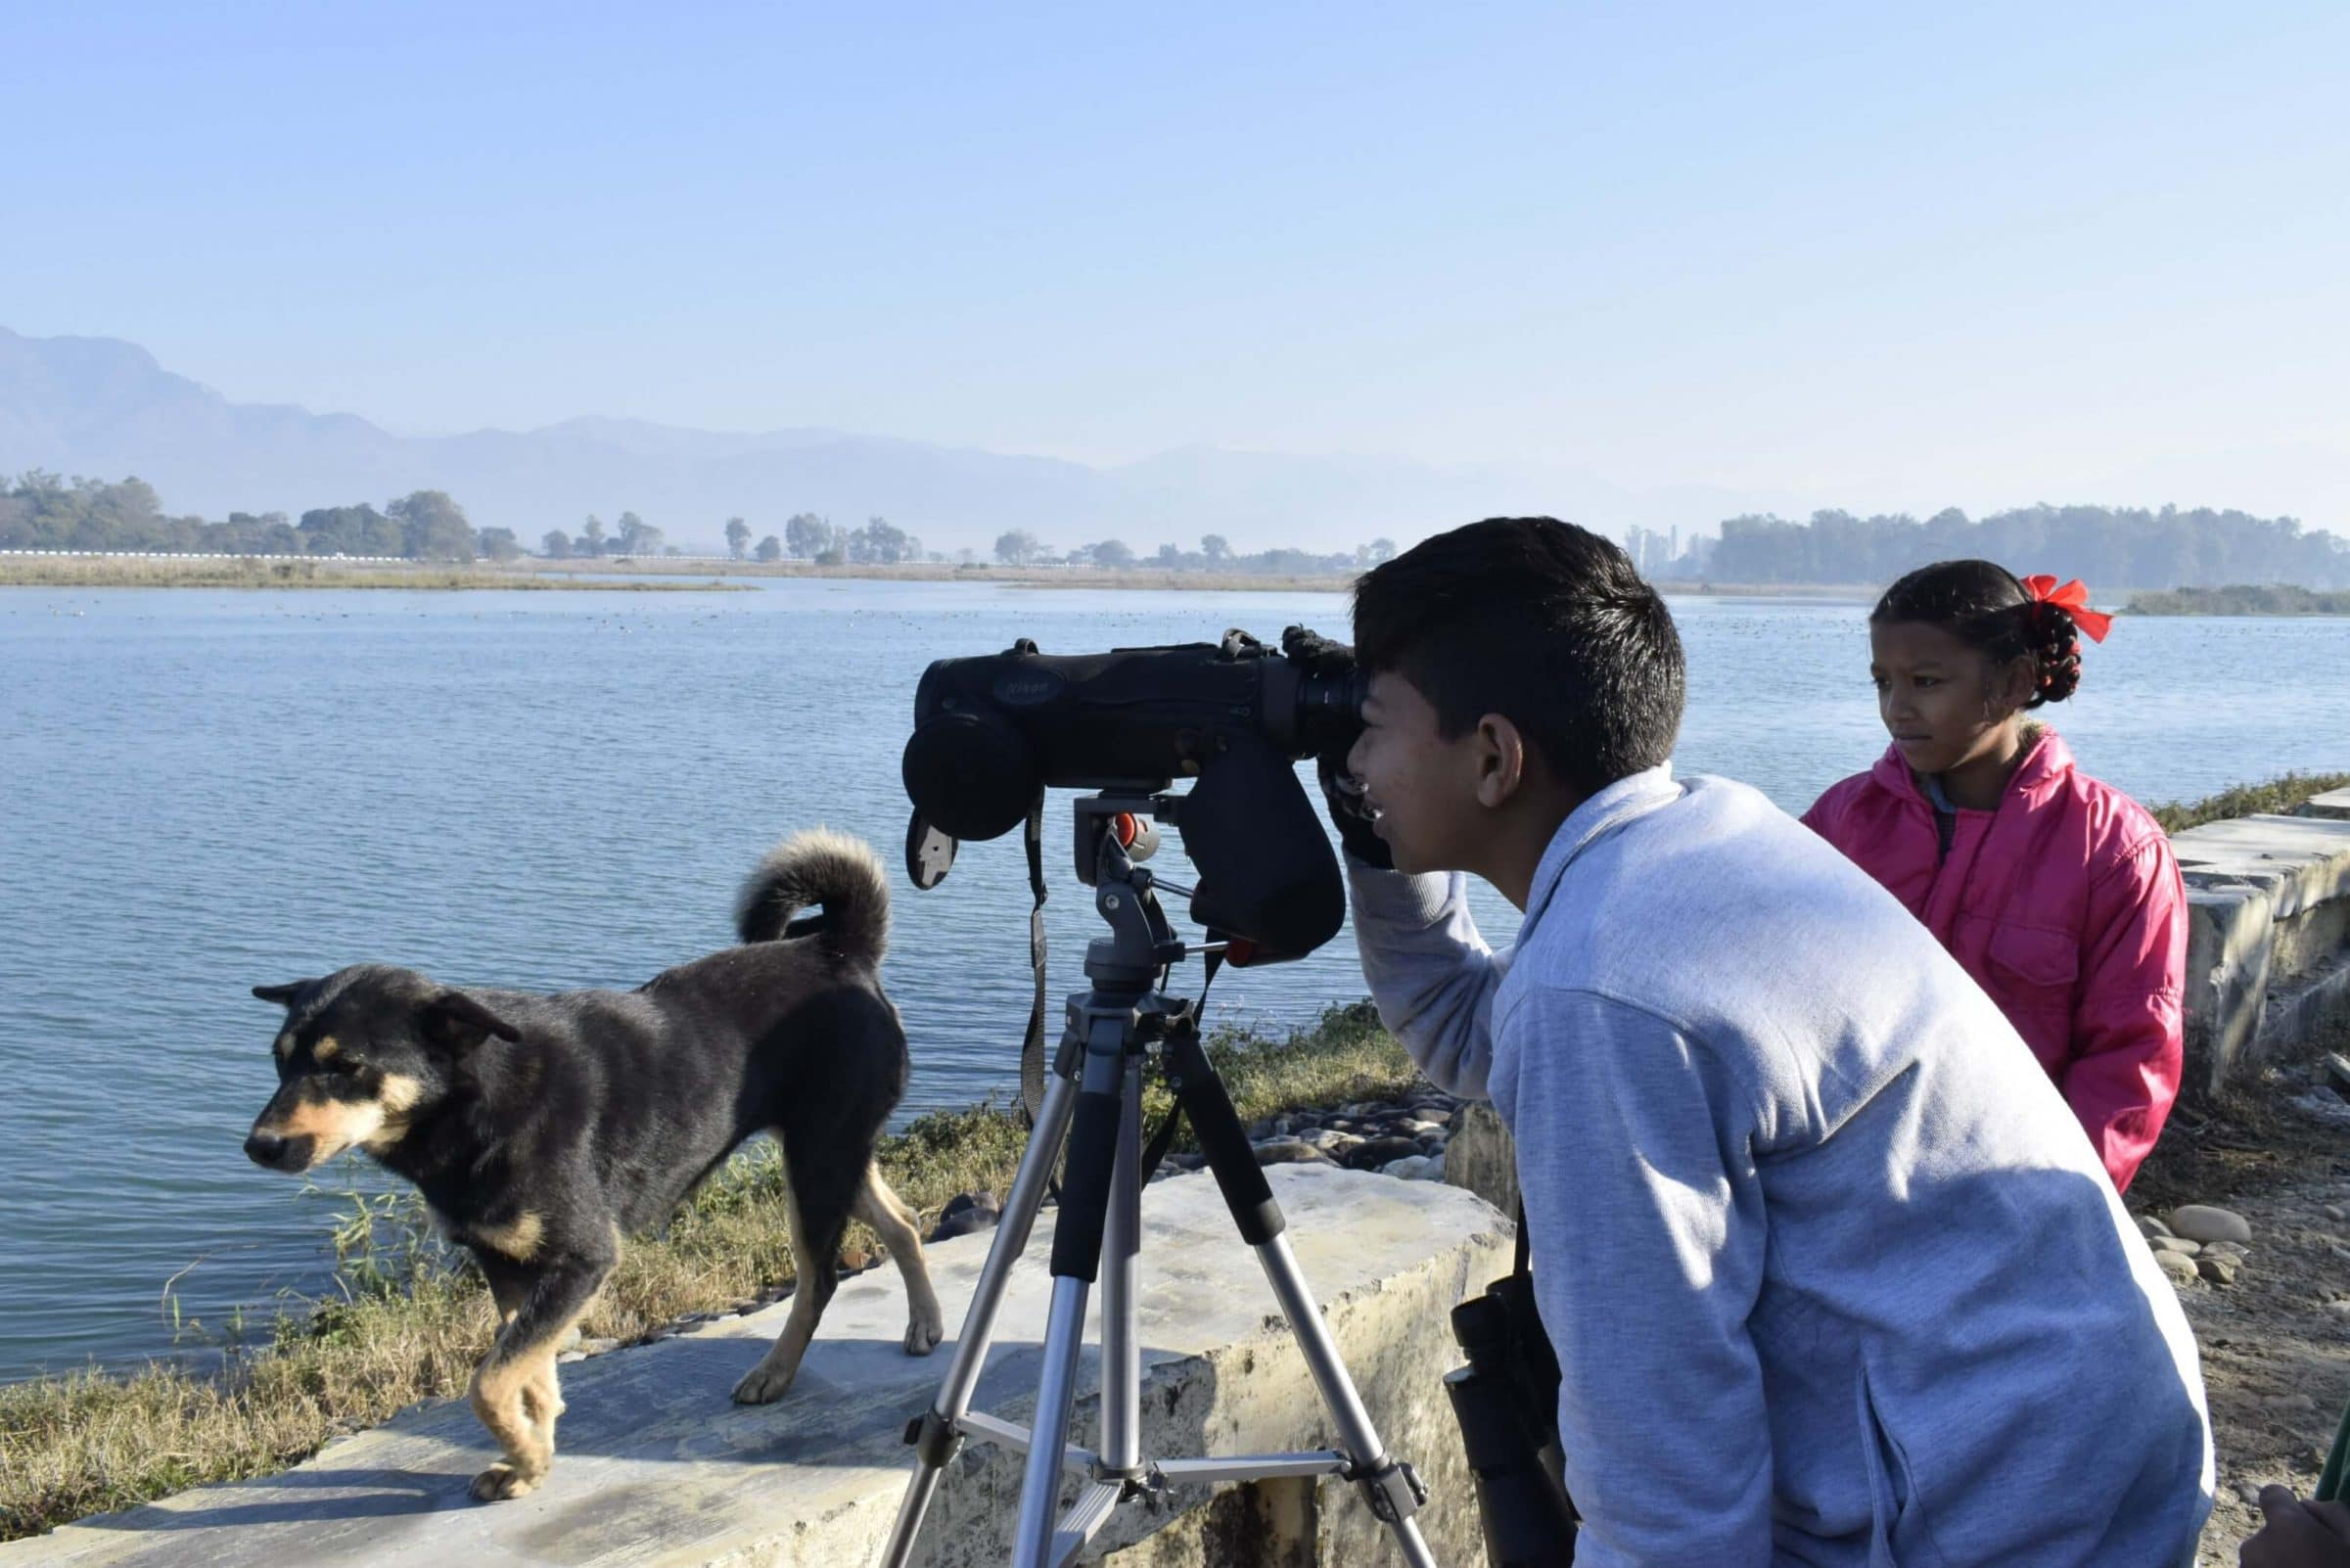 A visit to Assan Barrage to watch migratory birds